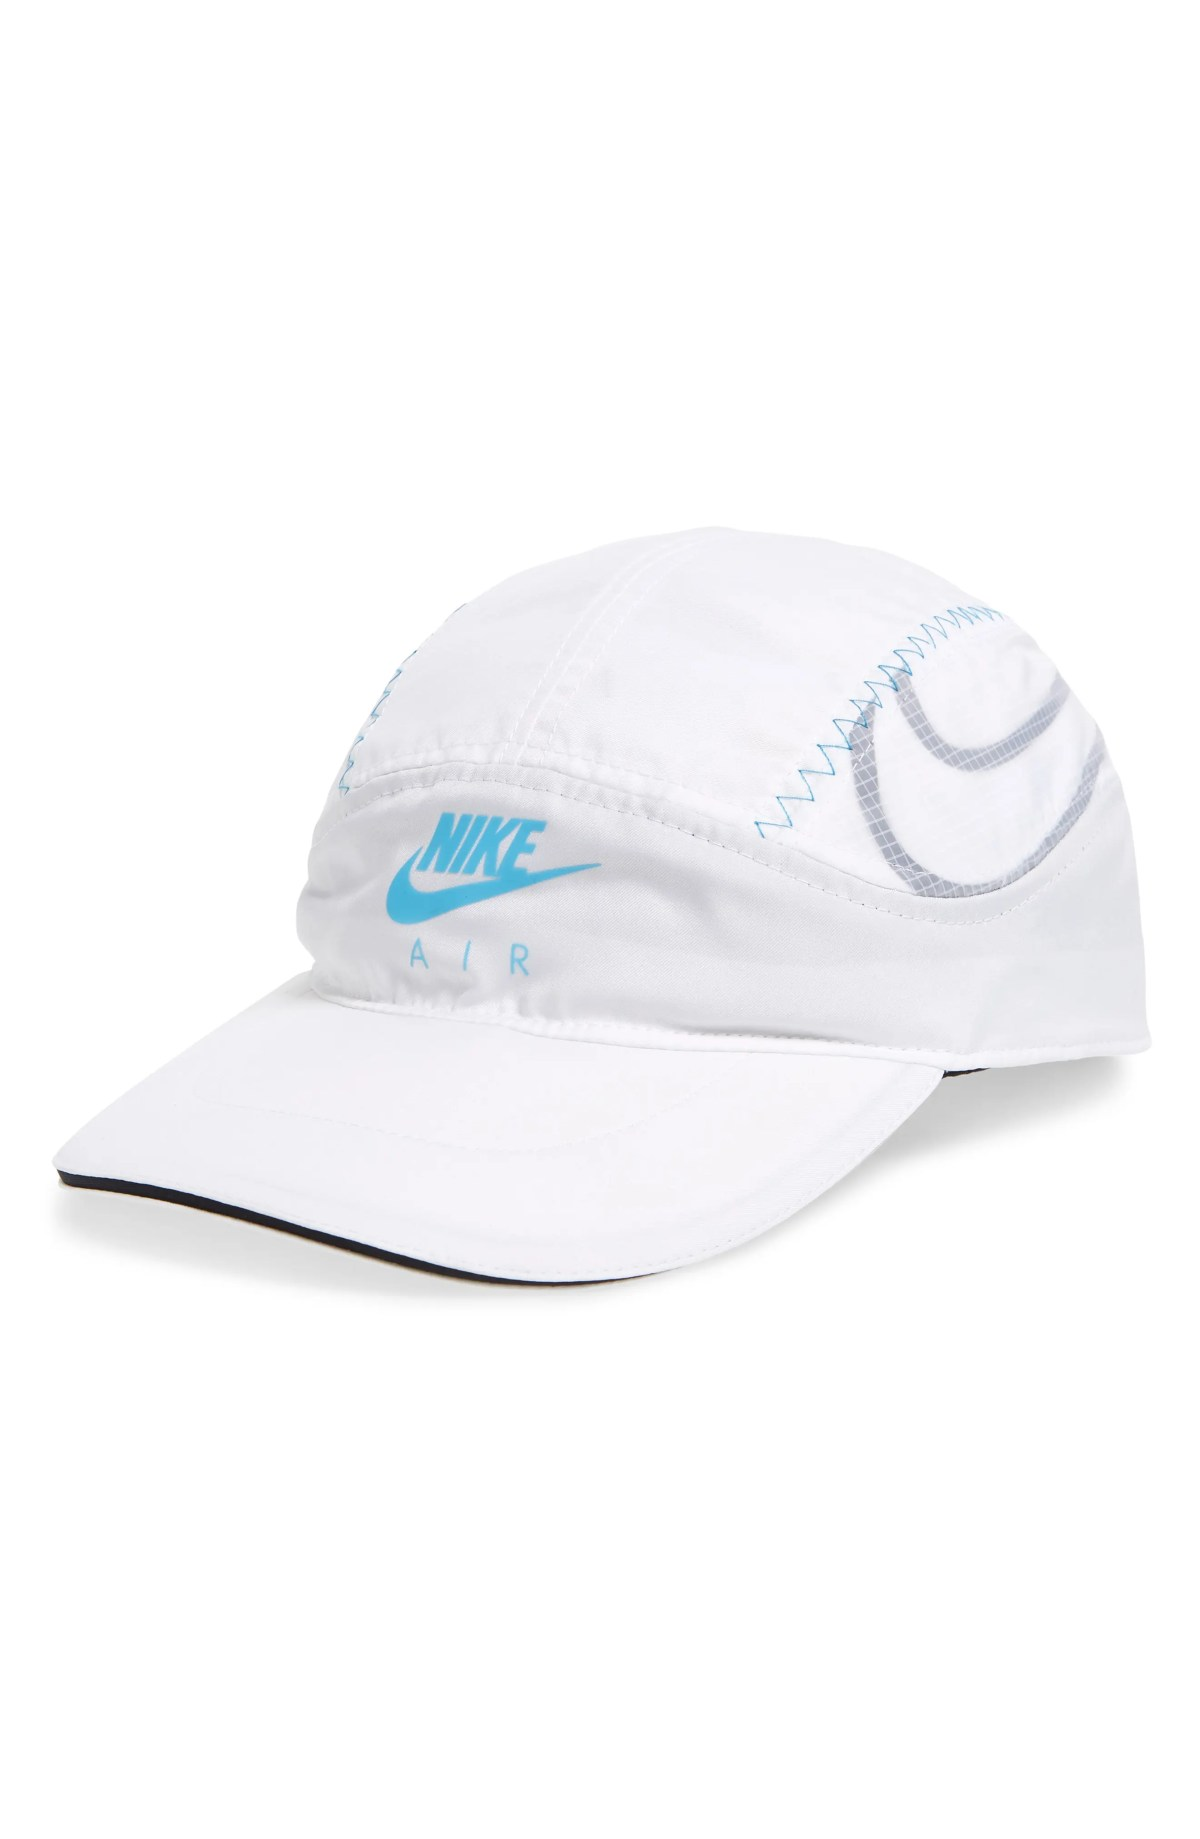 NIKE Sportswear Tailwind Performance Baseball Cap, Main, color, WHITE